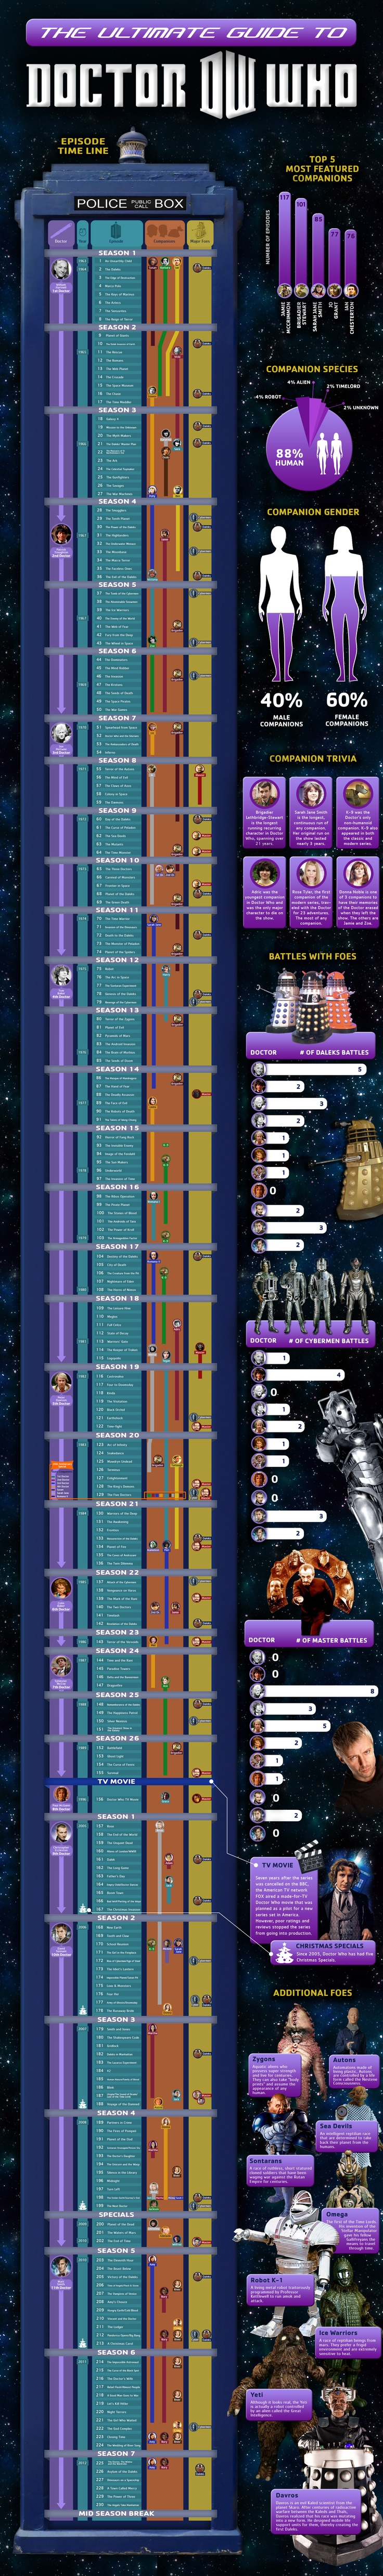 The Ultimate Guide to Dr. Who